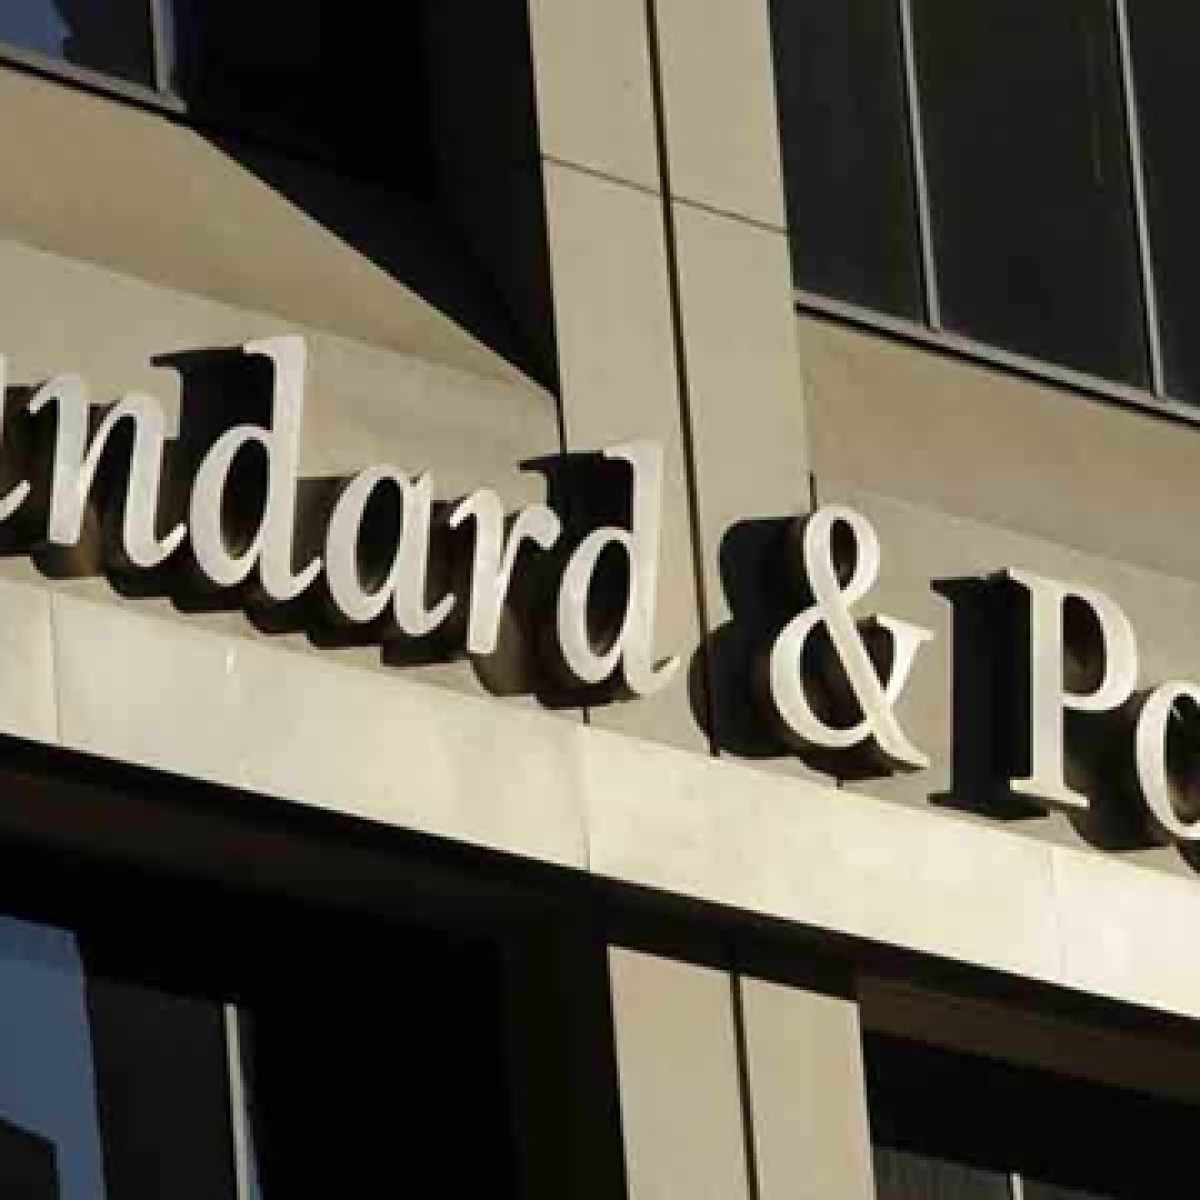 India's sovereign rating to remain at current level for next 2 years: S&P